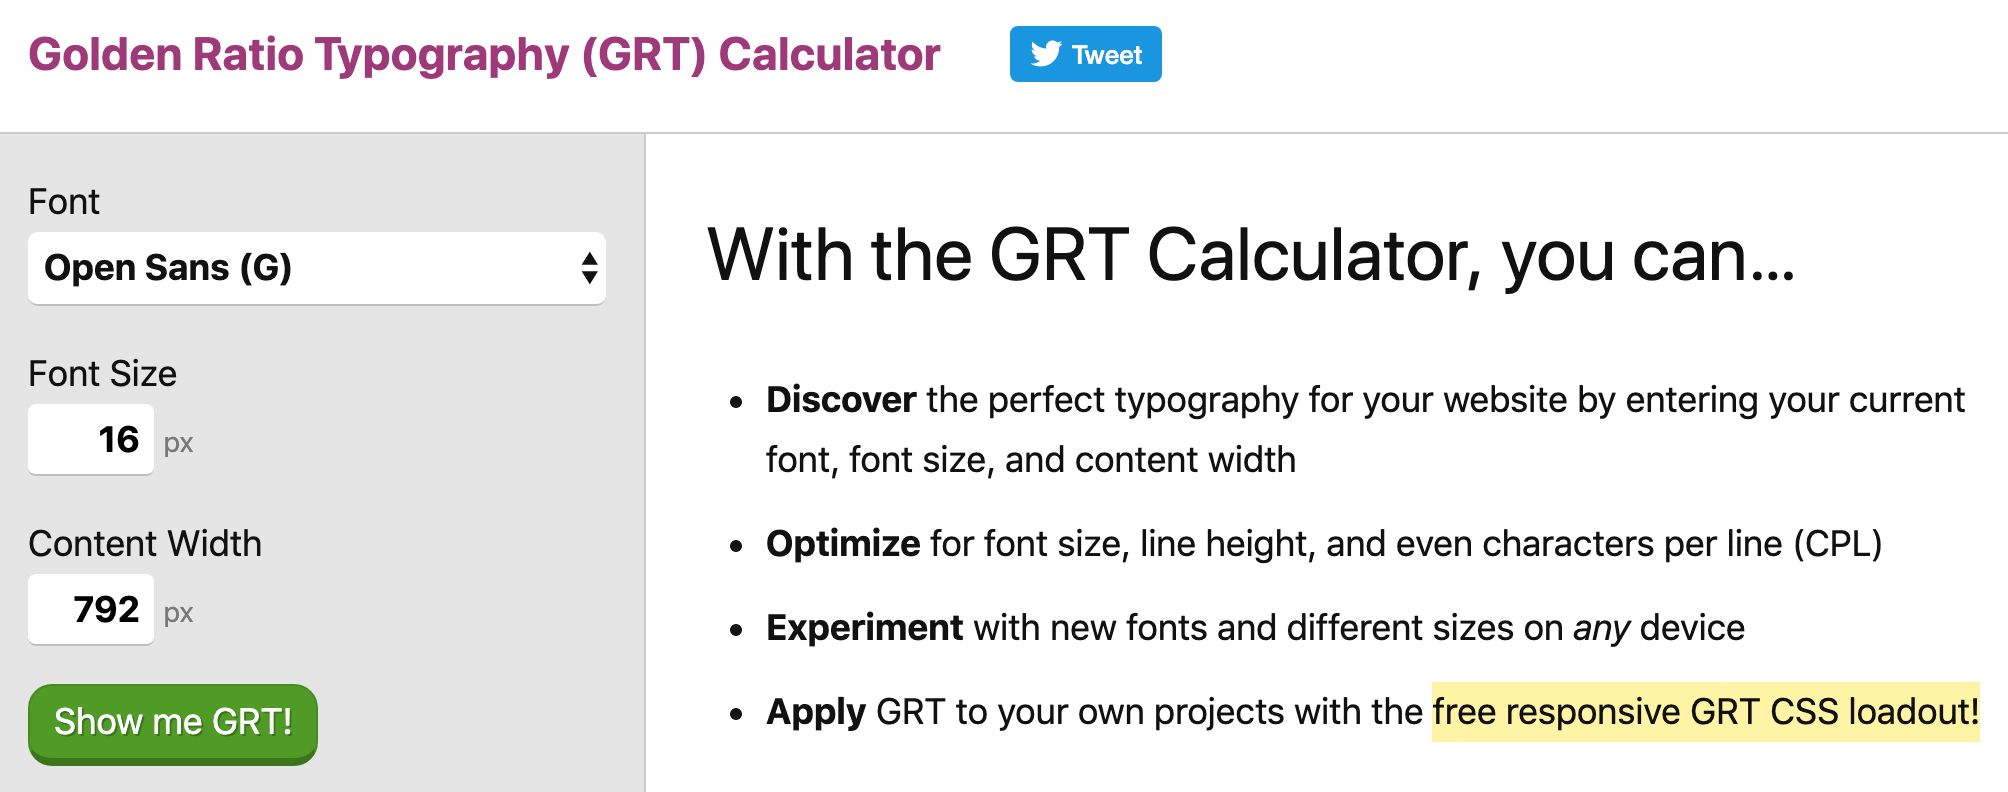 golden ratio typography calculator image